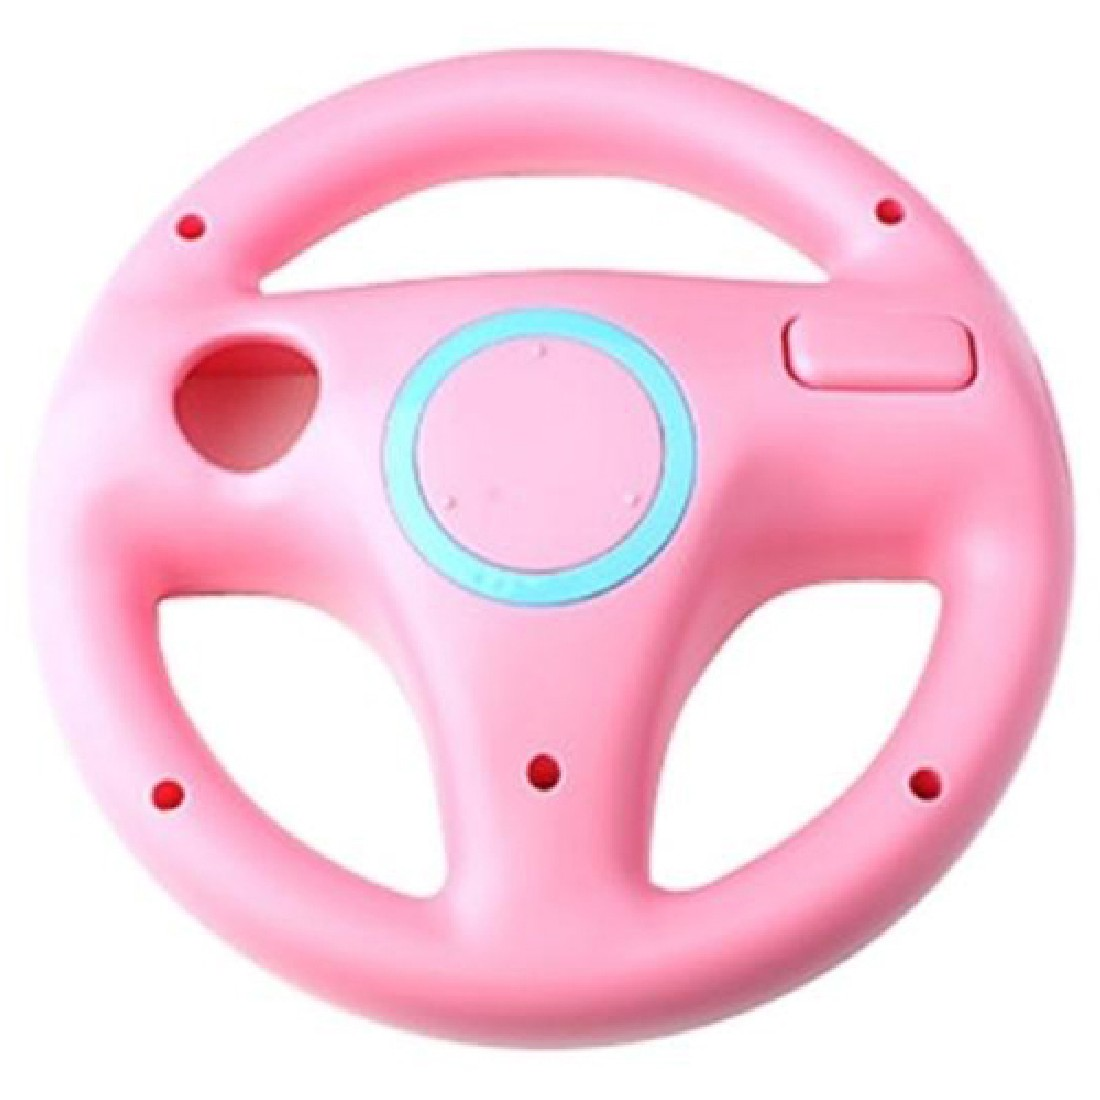 hot sale new fashion steering wheel for nintendo wii mario kart remote controller racing games